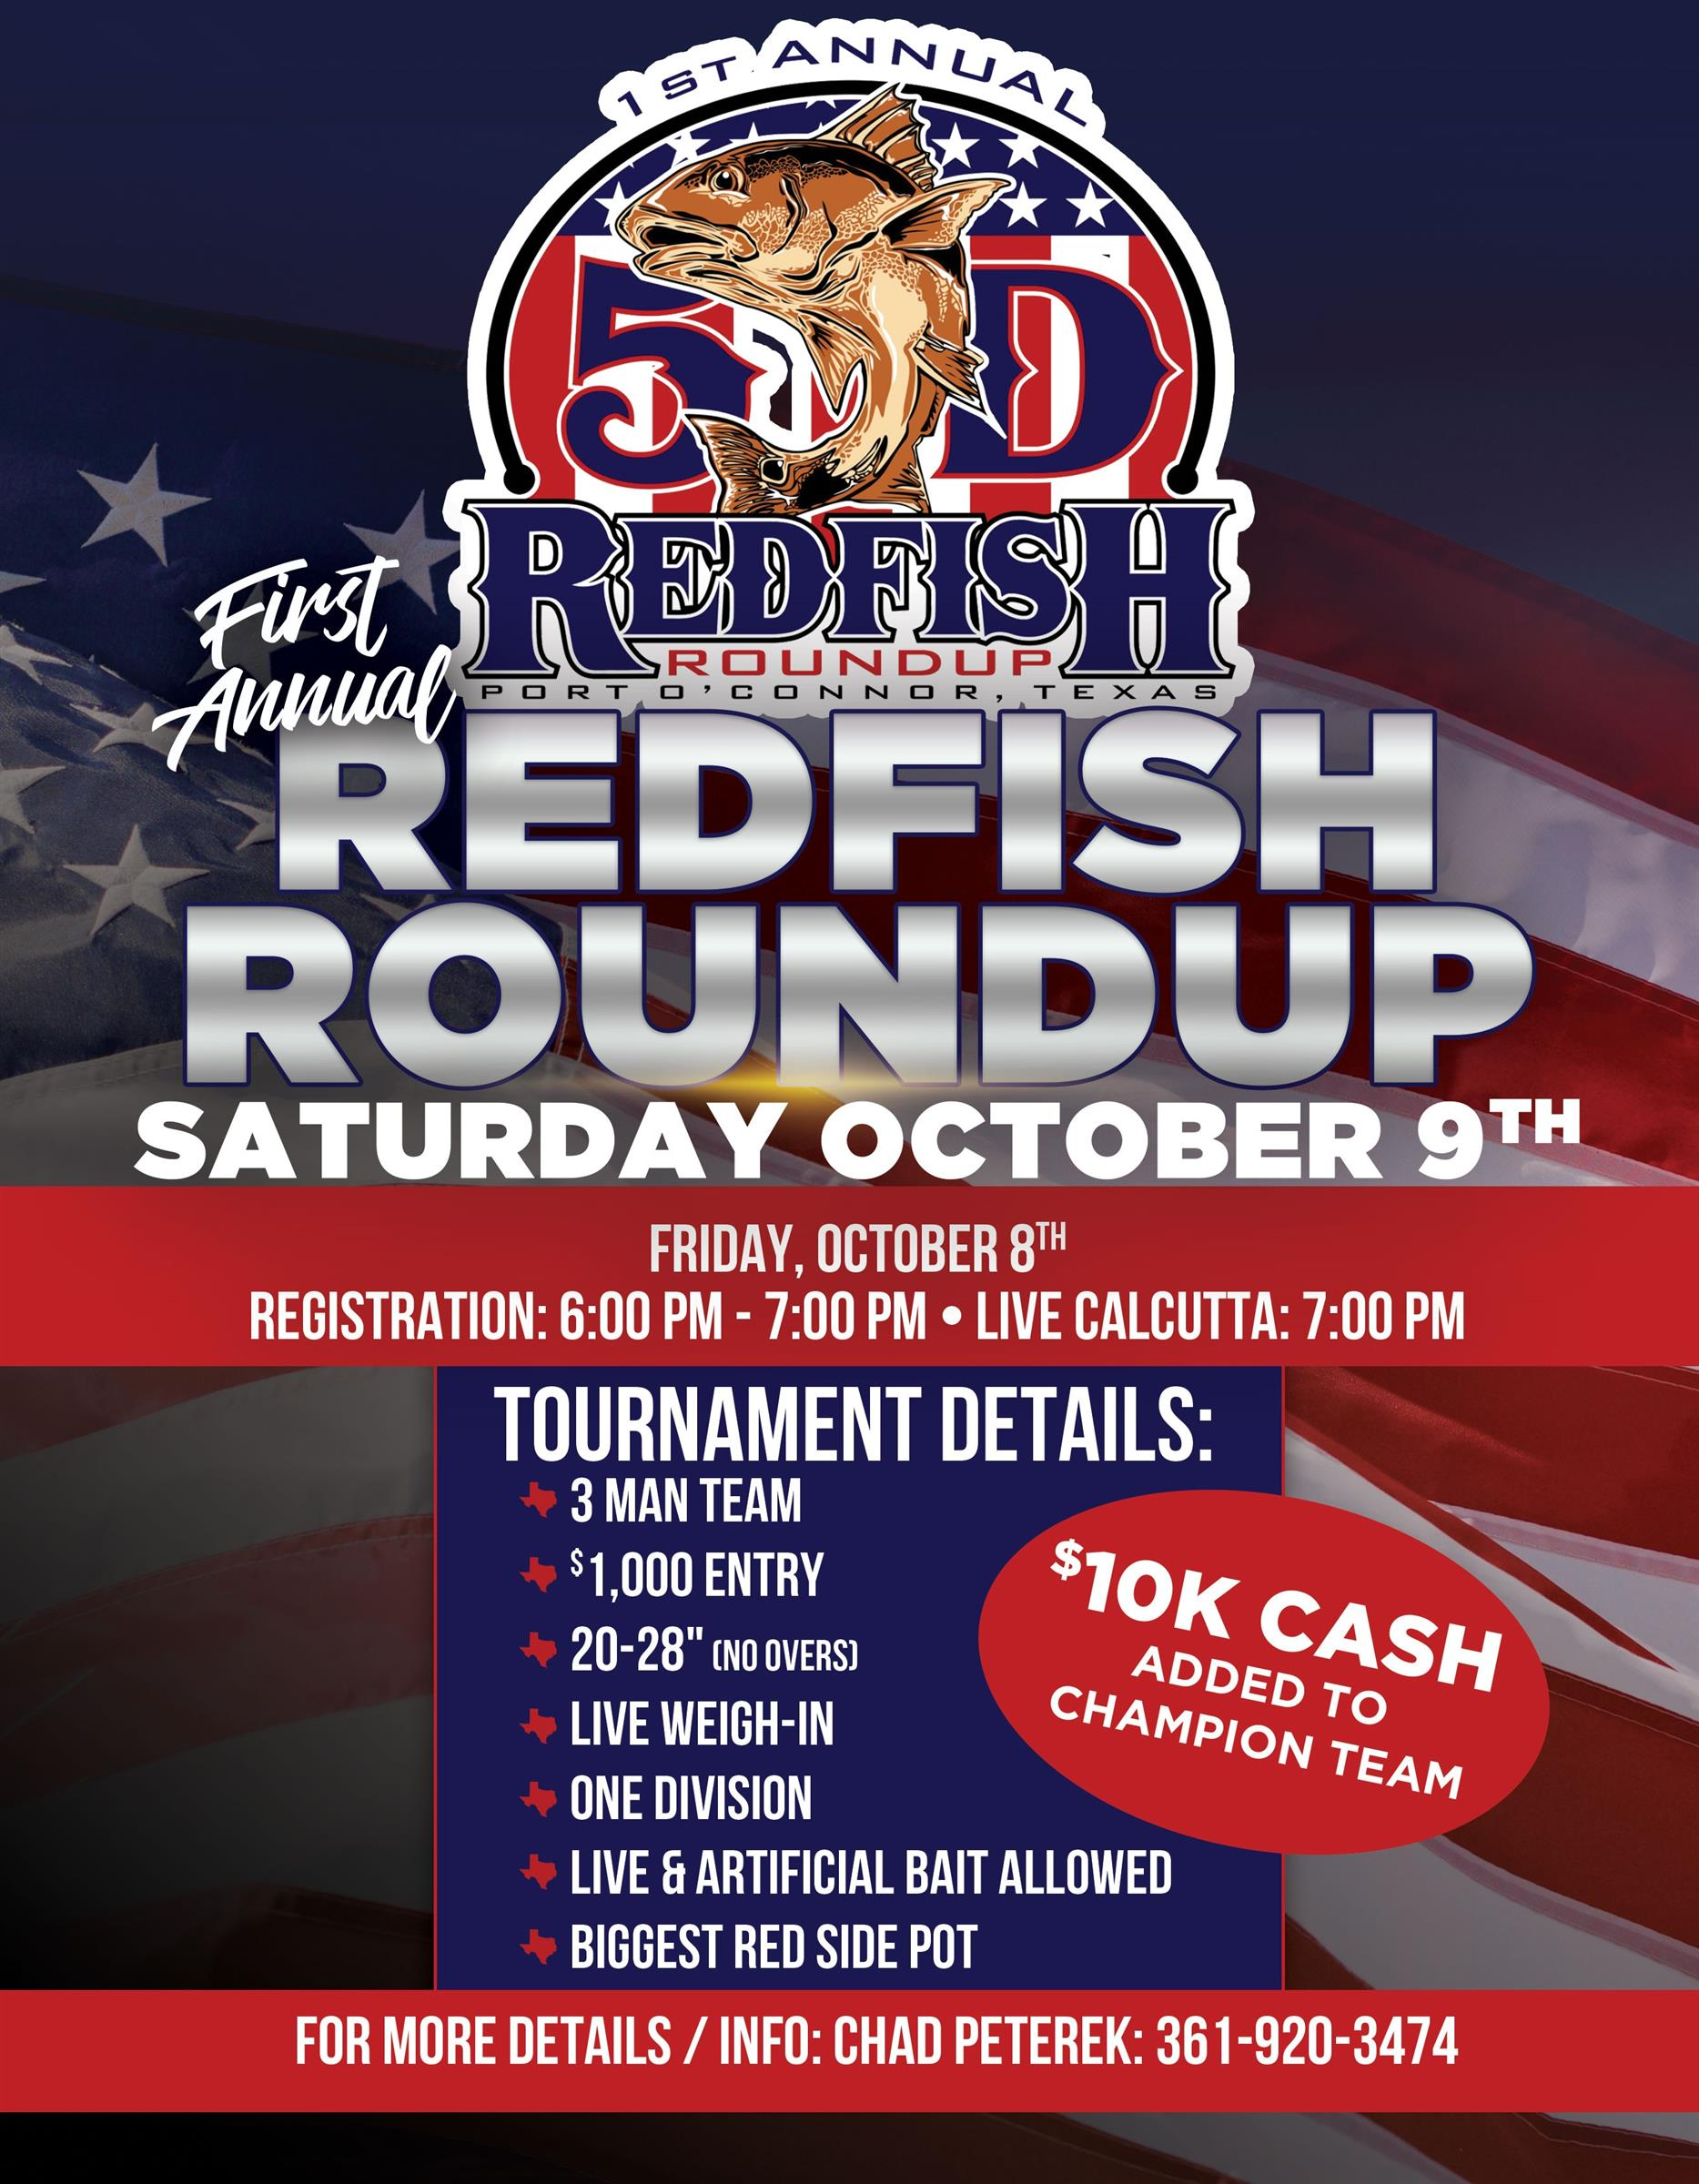 First Annual Redfish Roundup Saturday, October 9th. Registration 6PM-7PM Friday October 8th.